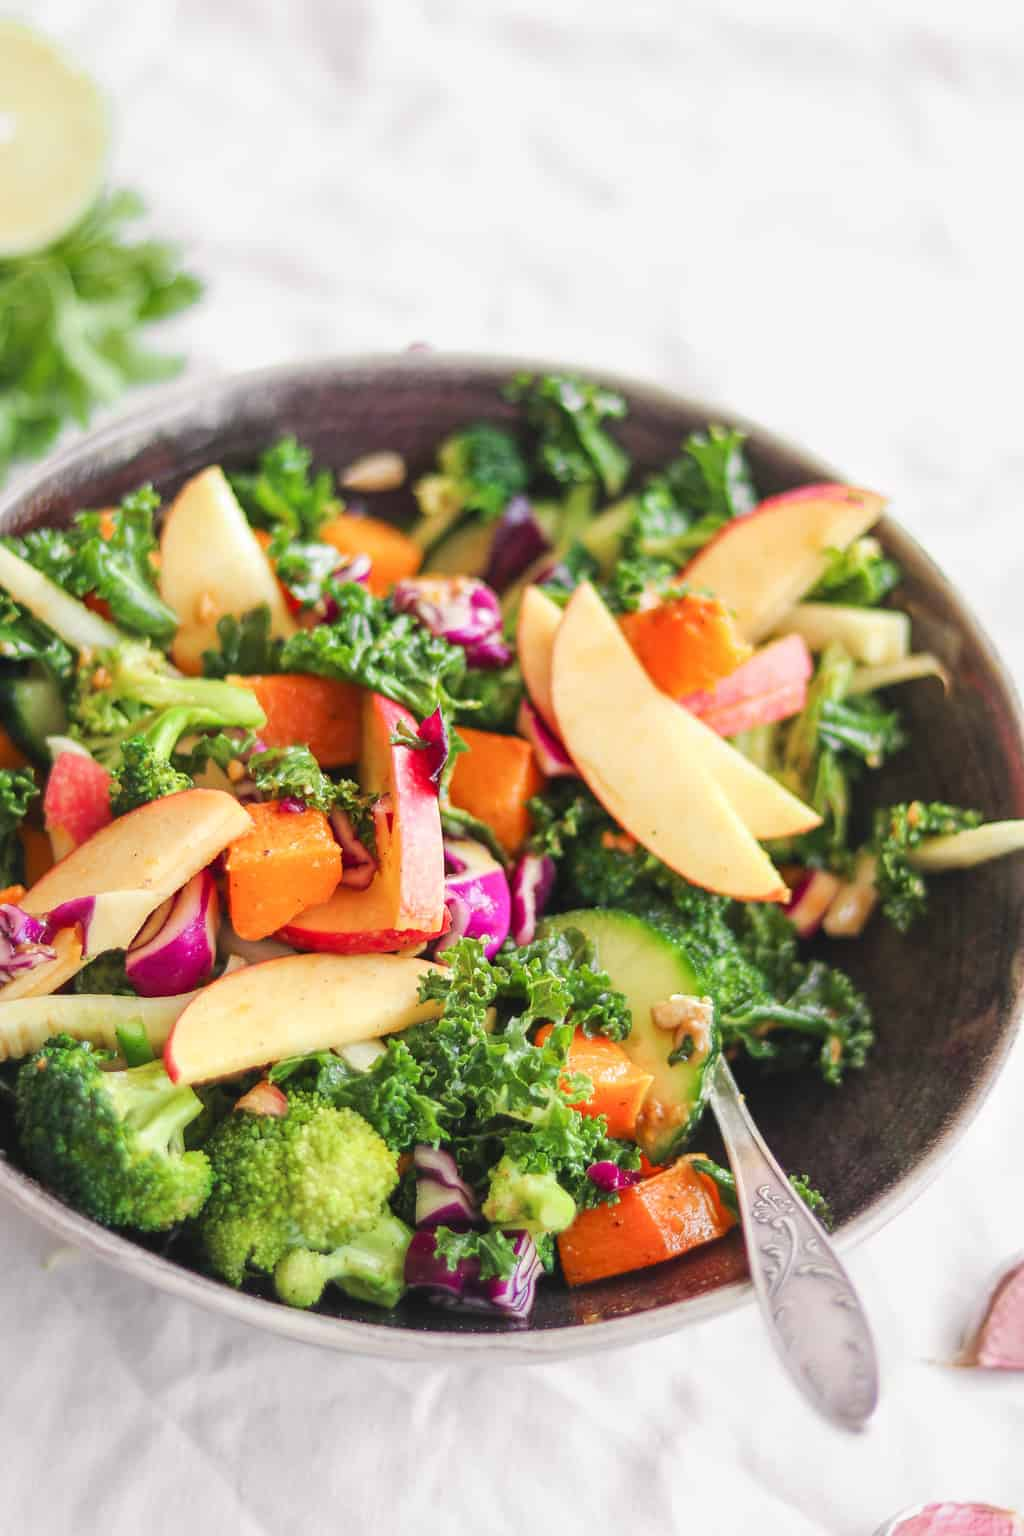 Closeup of vegan salad with butternut squash, kale and apple